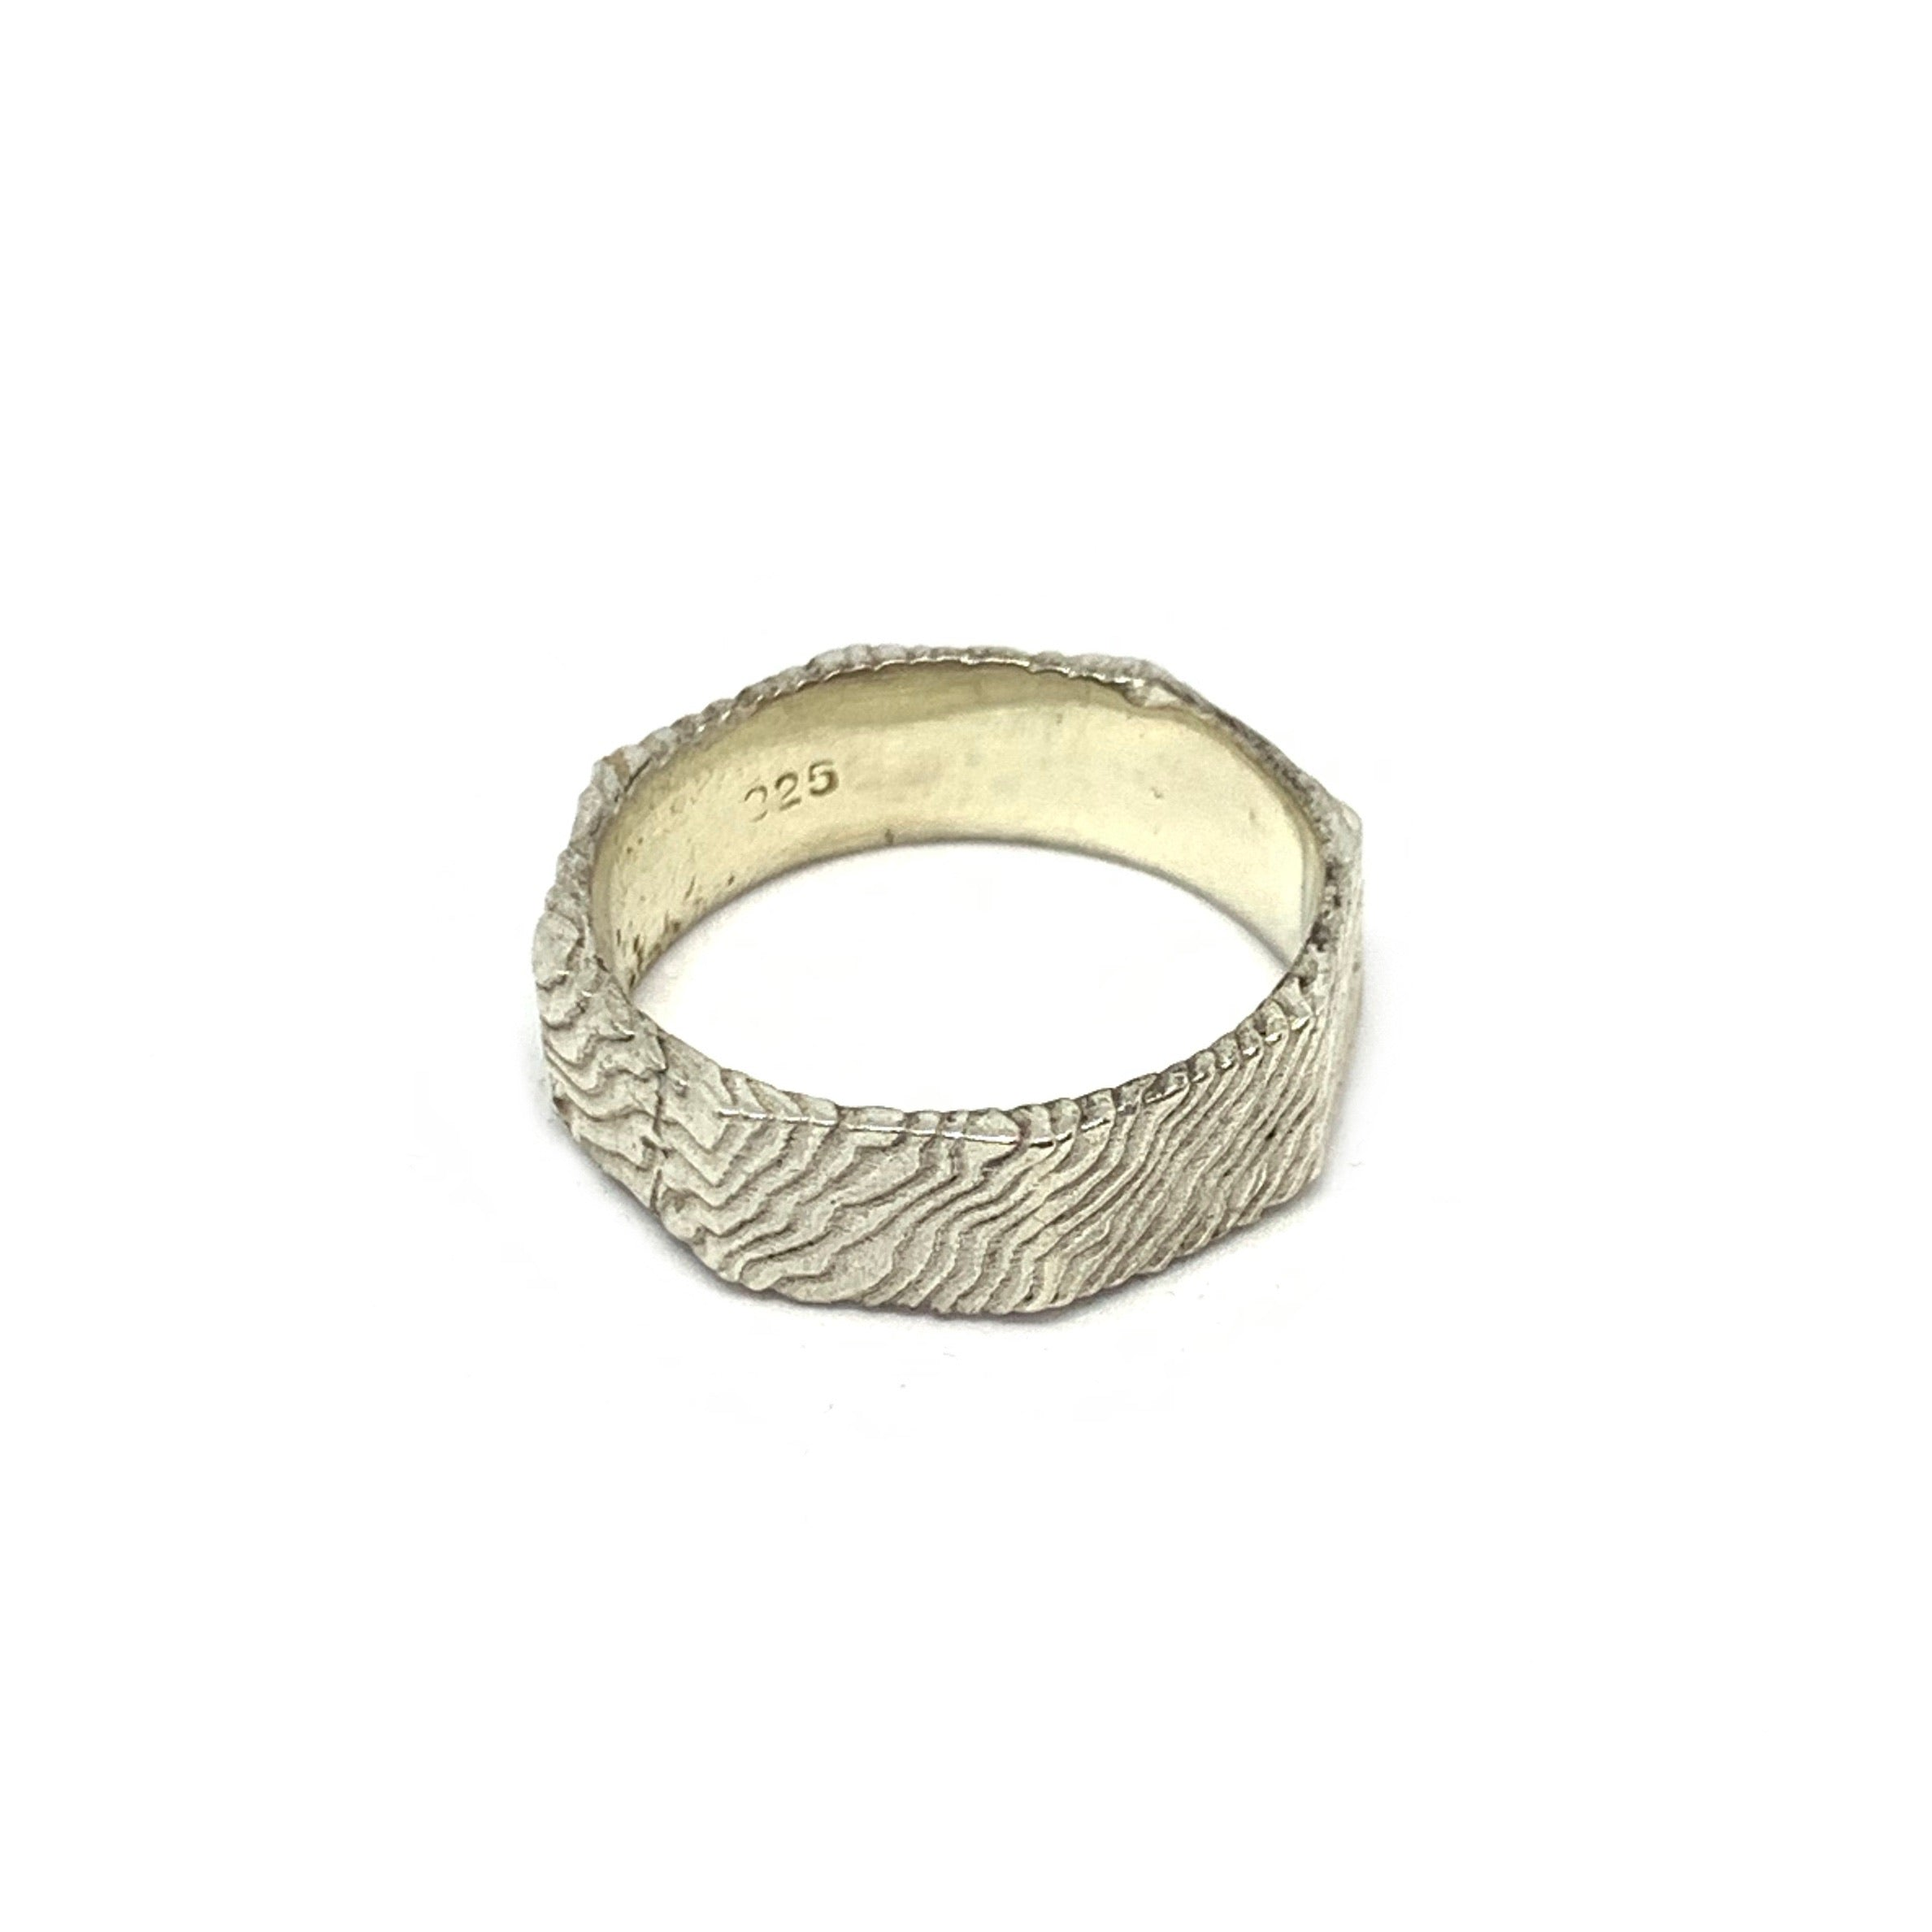 STERLING SILVER NUT RING